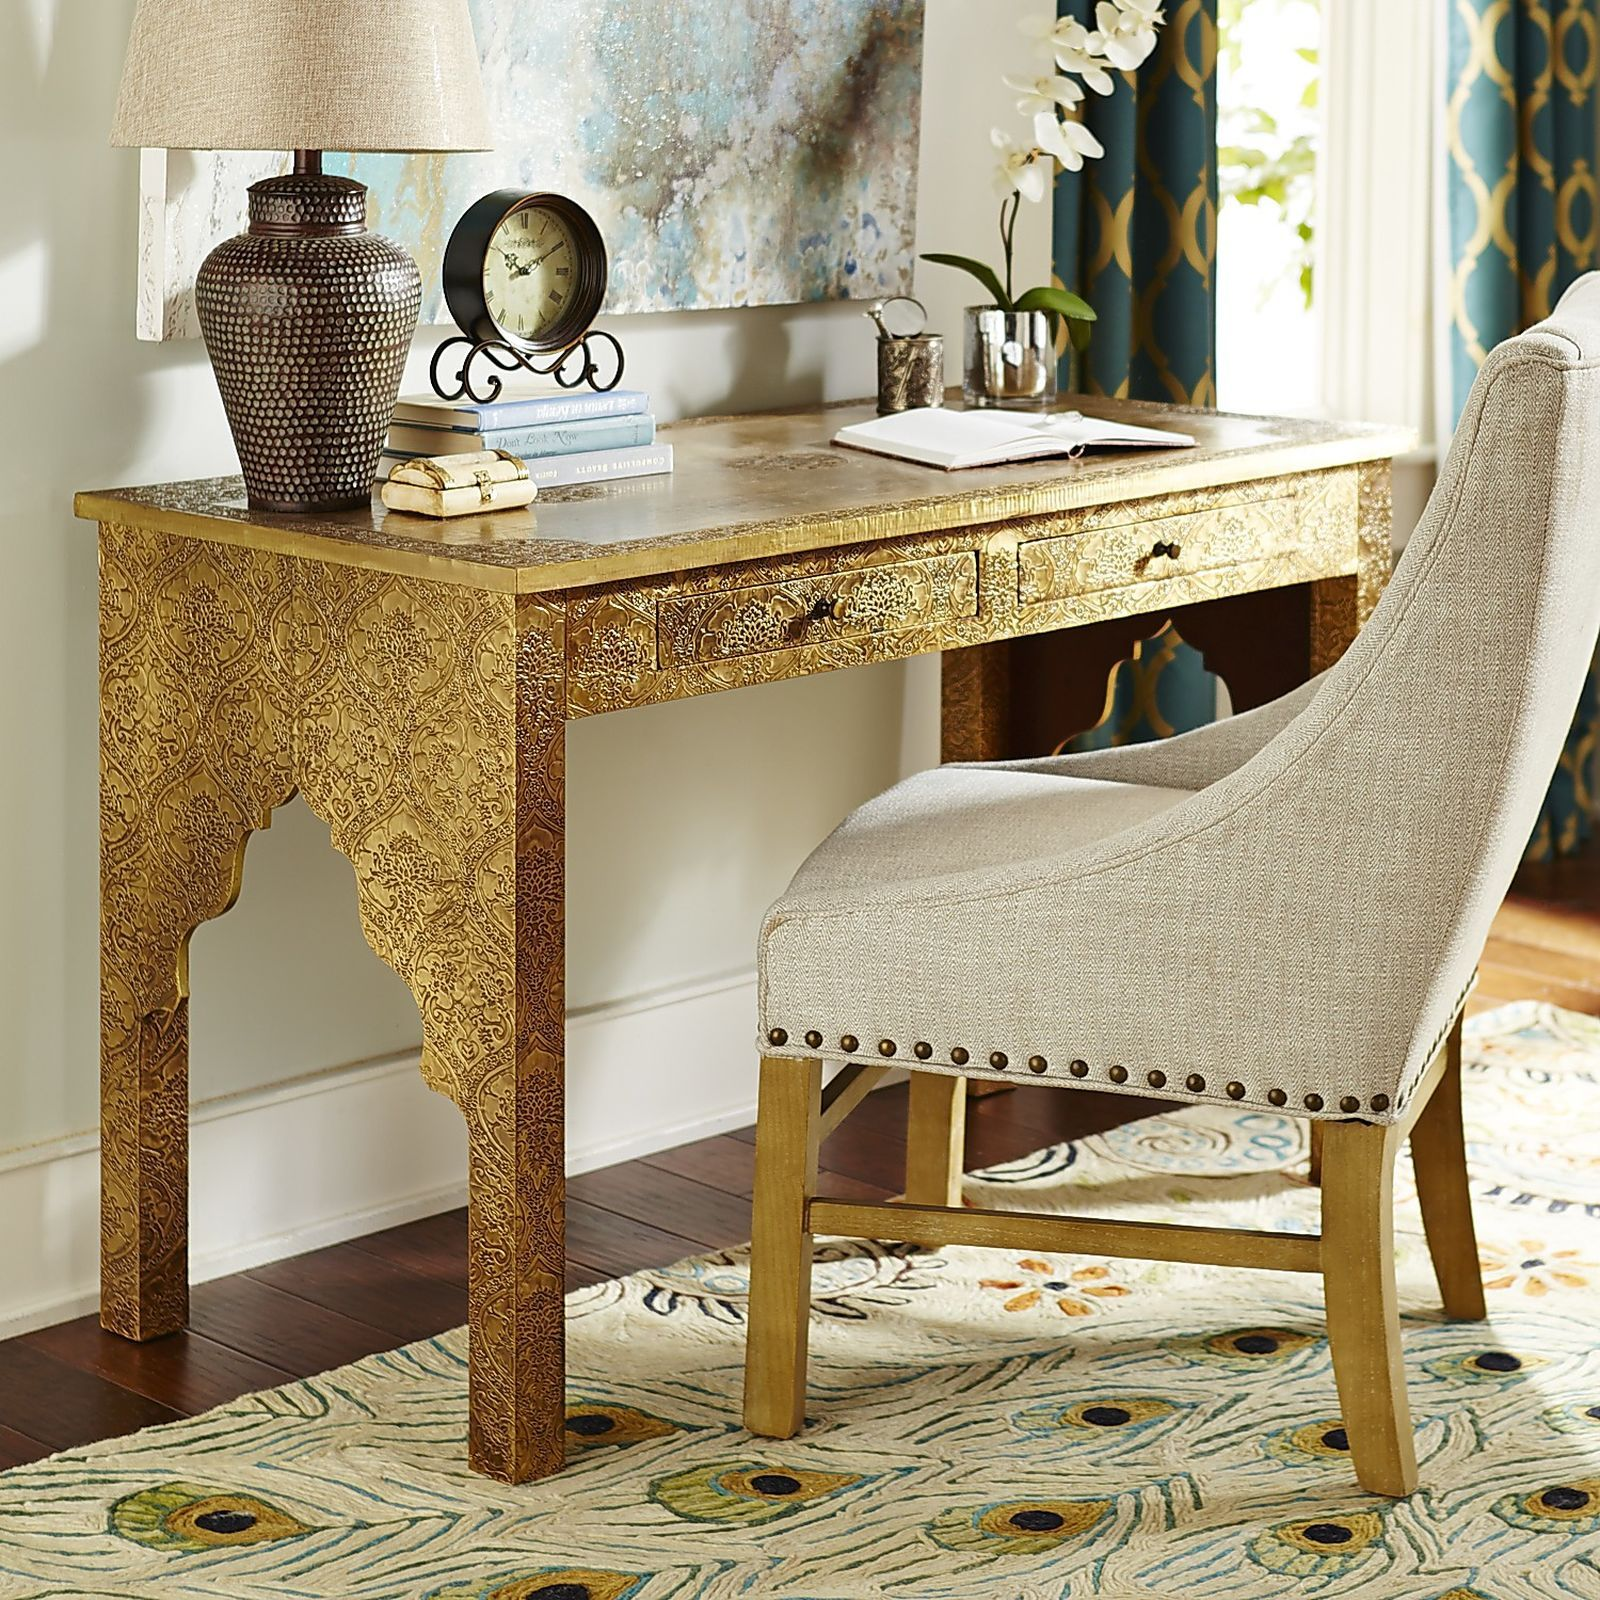 Our Moroccan-inspired, hand-embossed, two-drawer desk is hand-painted in the golden tones and patterns of an exotic Arabian tapestry. Cutouts of traditional Middle Eastern arches speak directly to the table's cultural origins. Quite the conversation piece, this one.